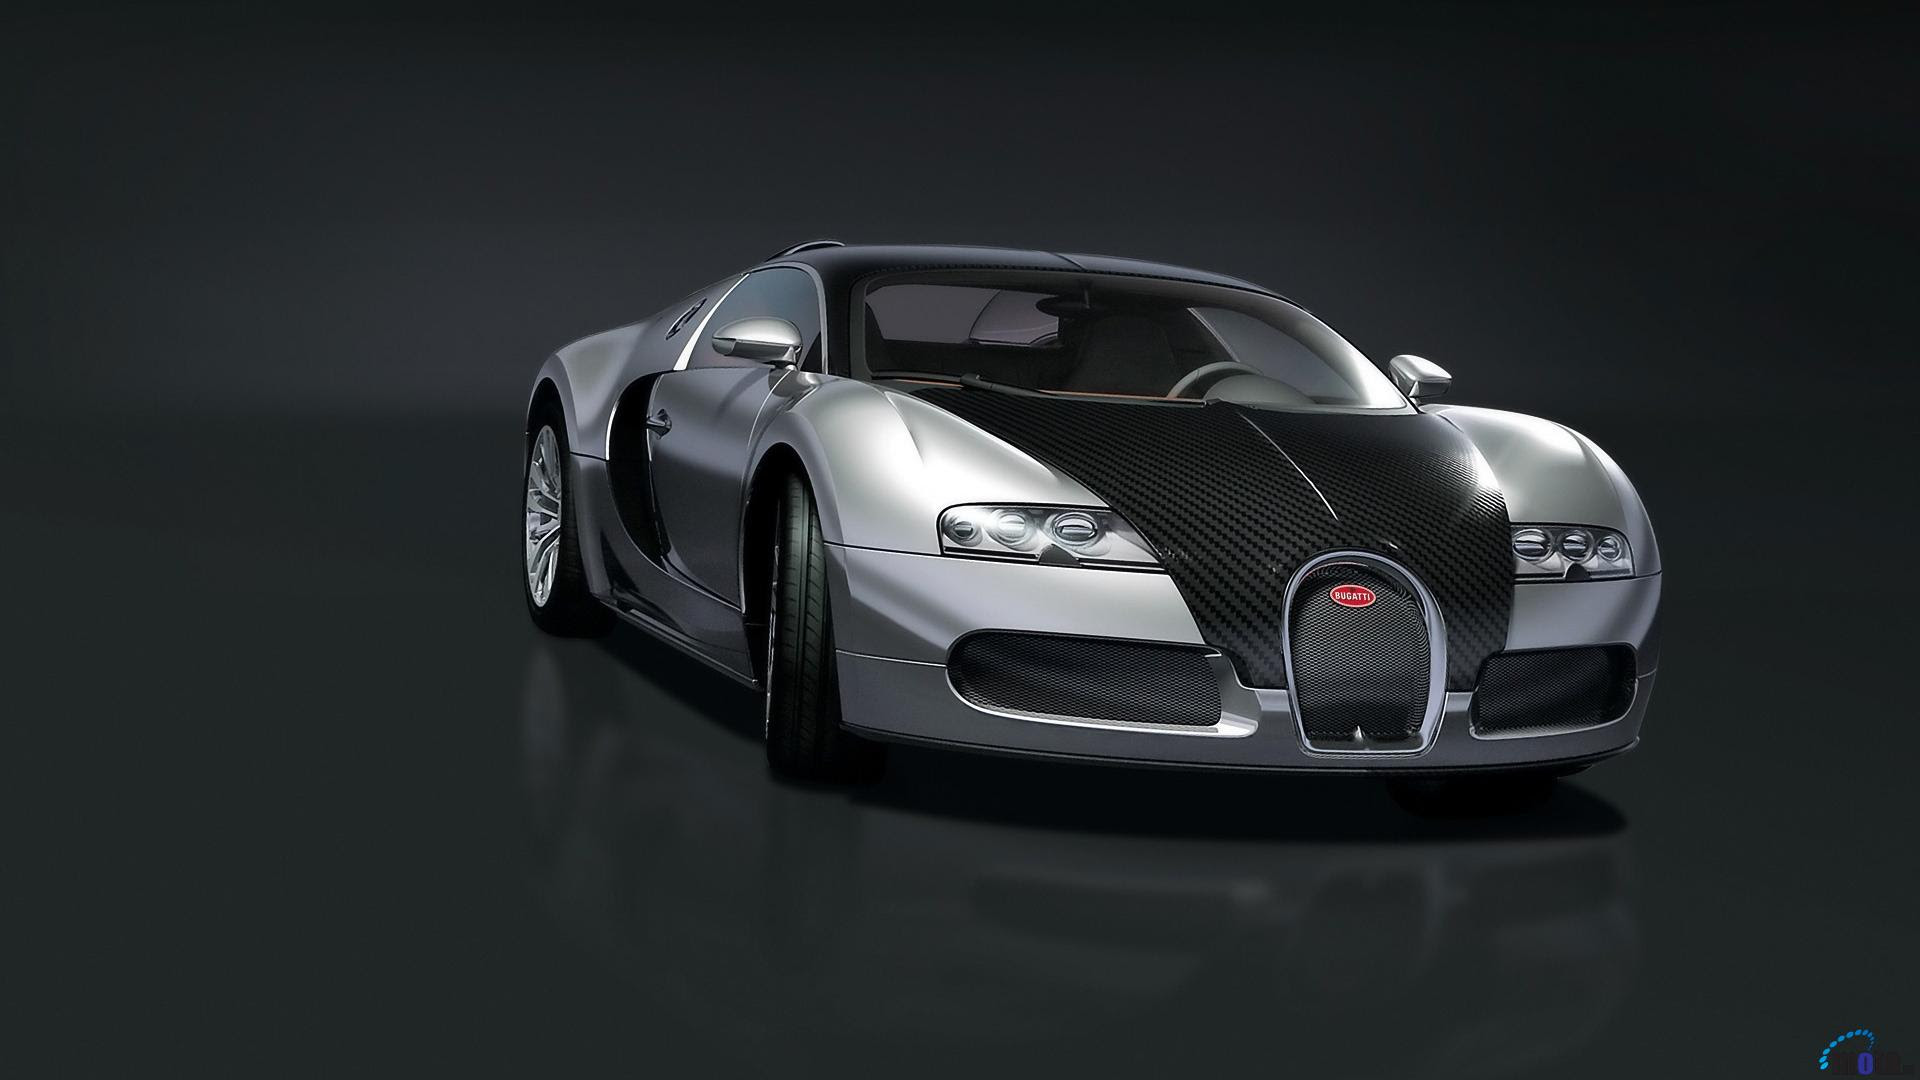 50 Bugatti Veyron wallpaper HD for Laptop